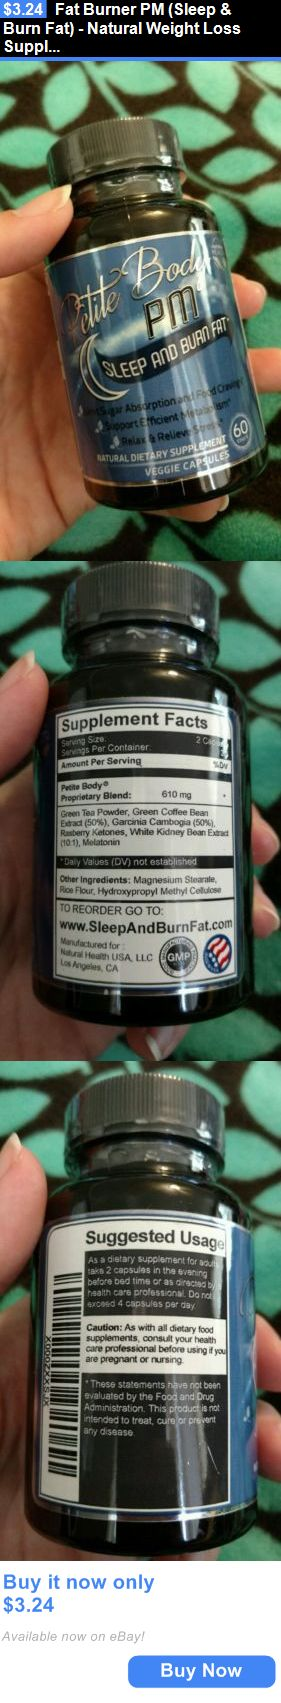 Weight Loss: Fat Burner Pm (Sleep And Burn Fat) - Natural Weight Loss Supplements For Women BUY IT NOW ONLY: $3.24